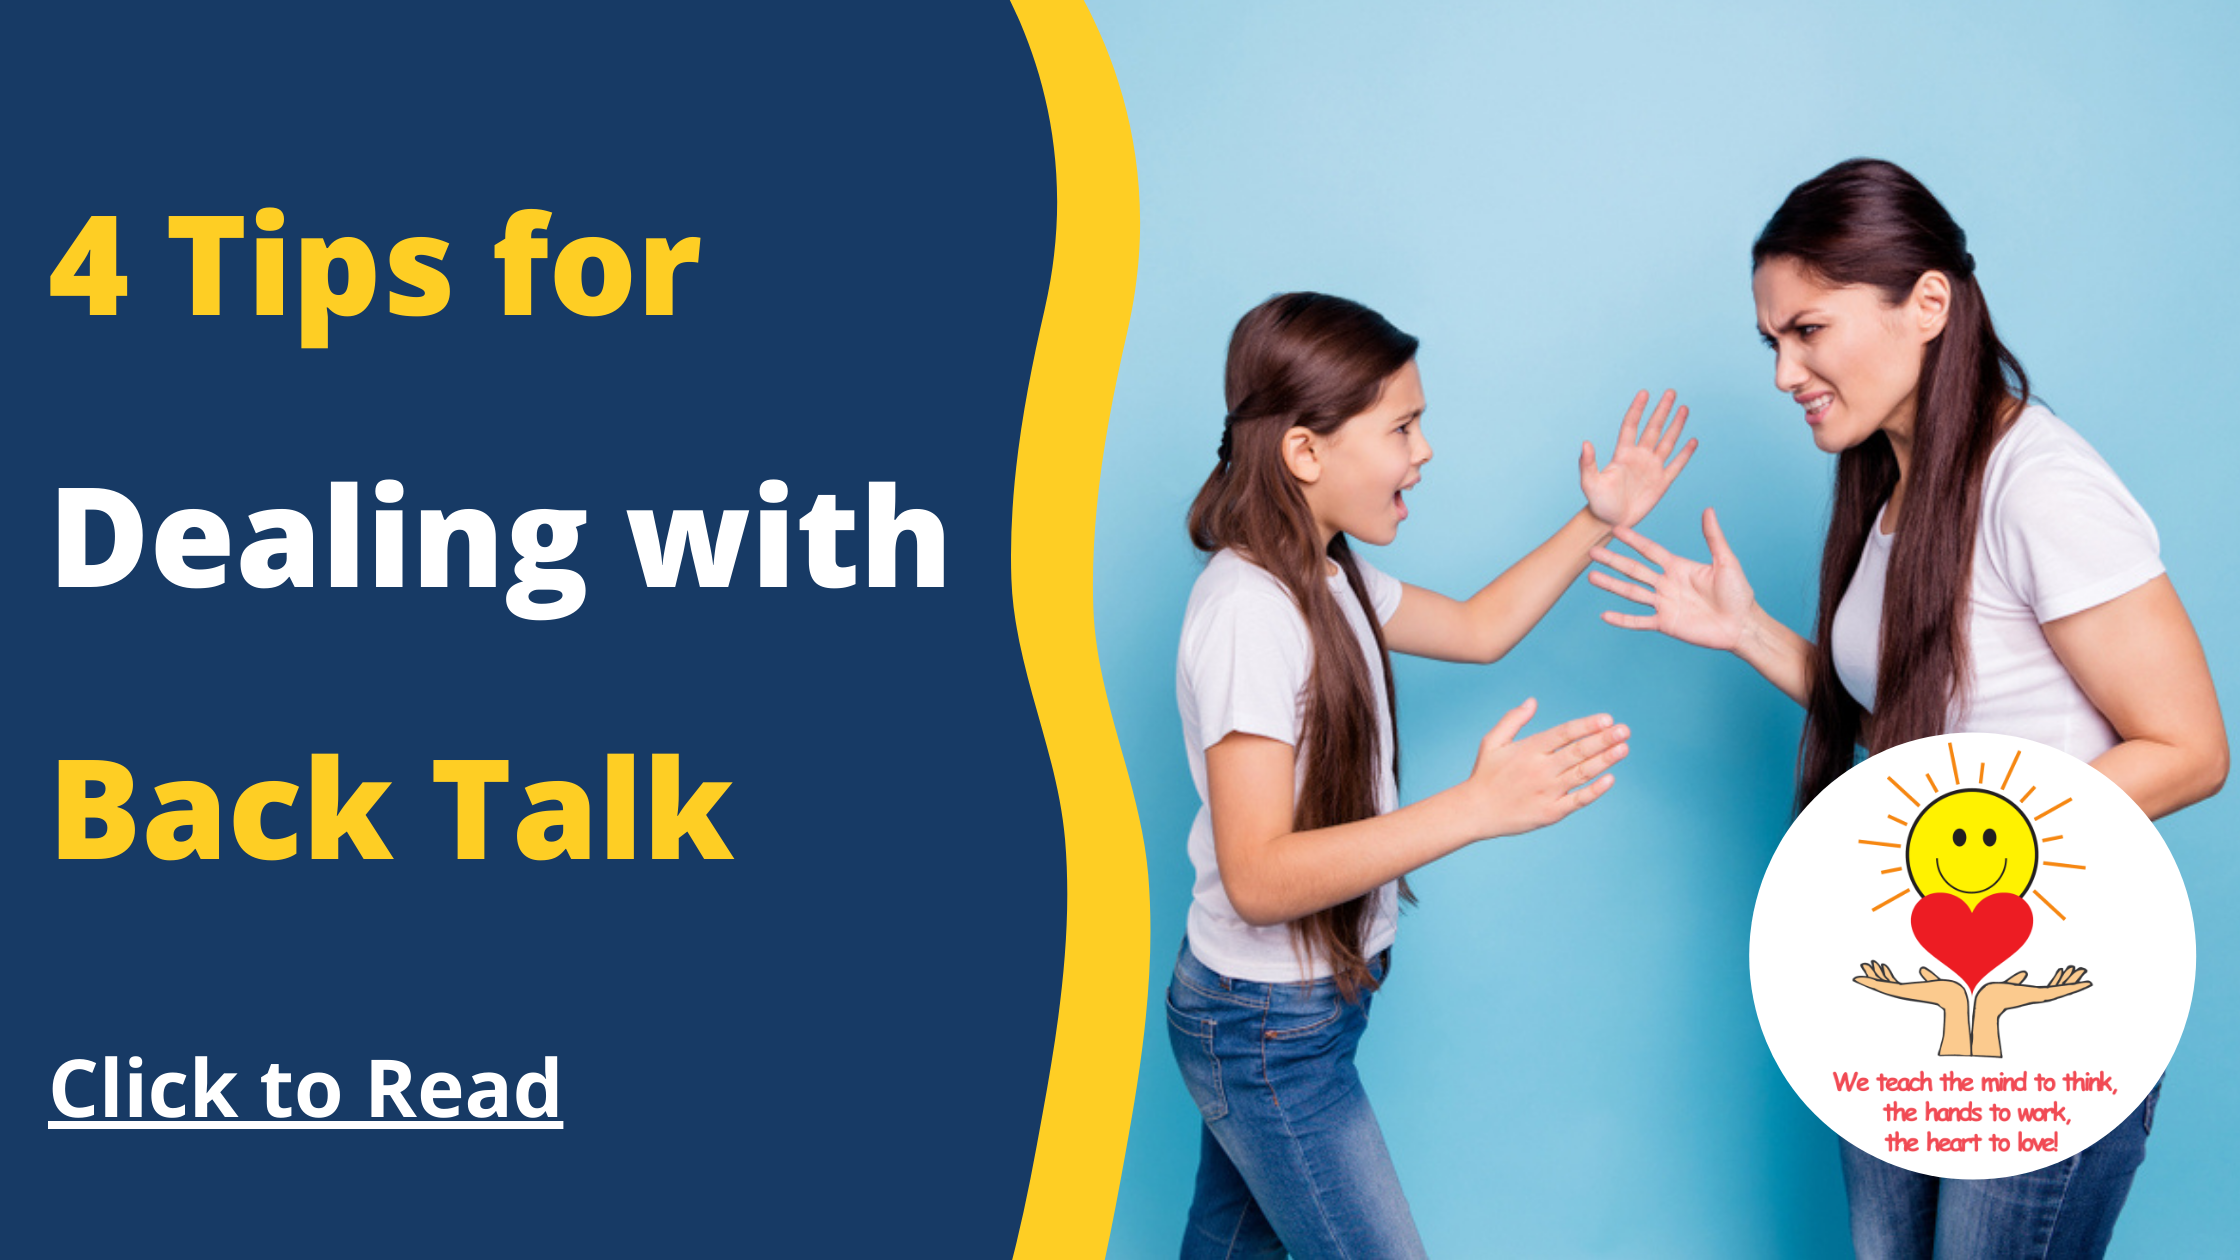 4 Tips for Dealing with Back Talk